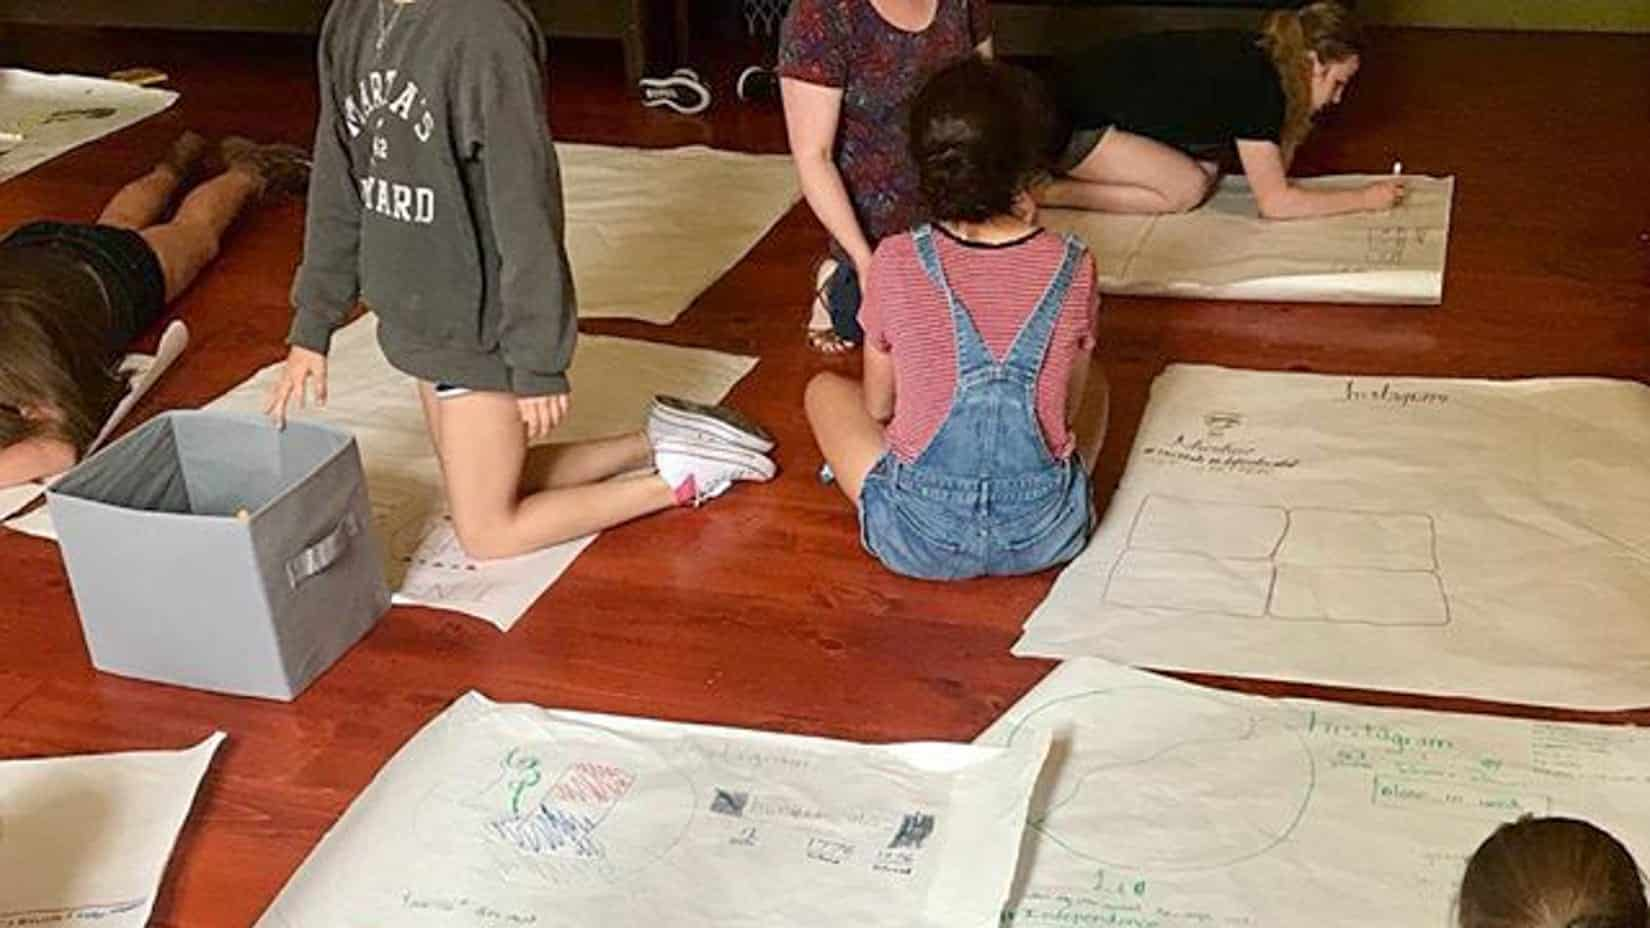 Students in expressive arts class drawing on posters